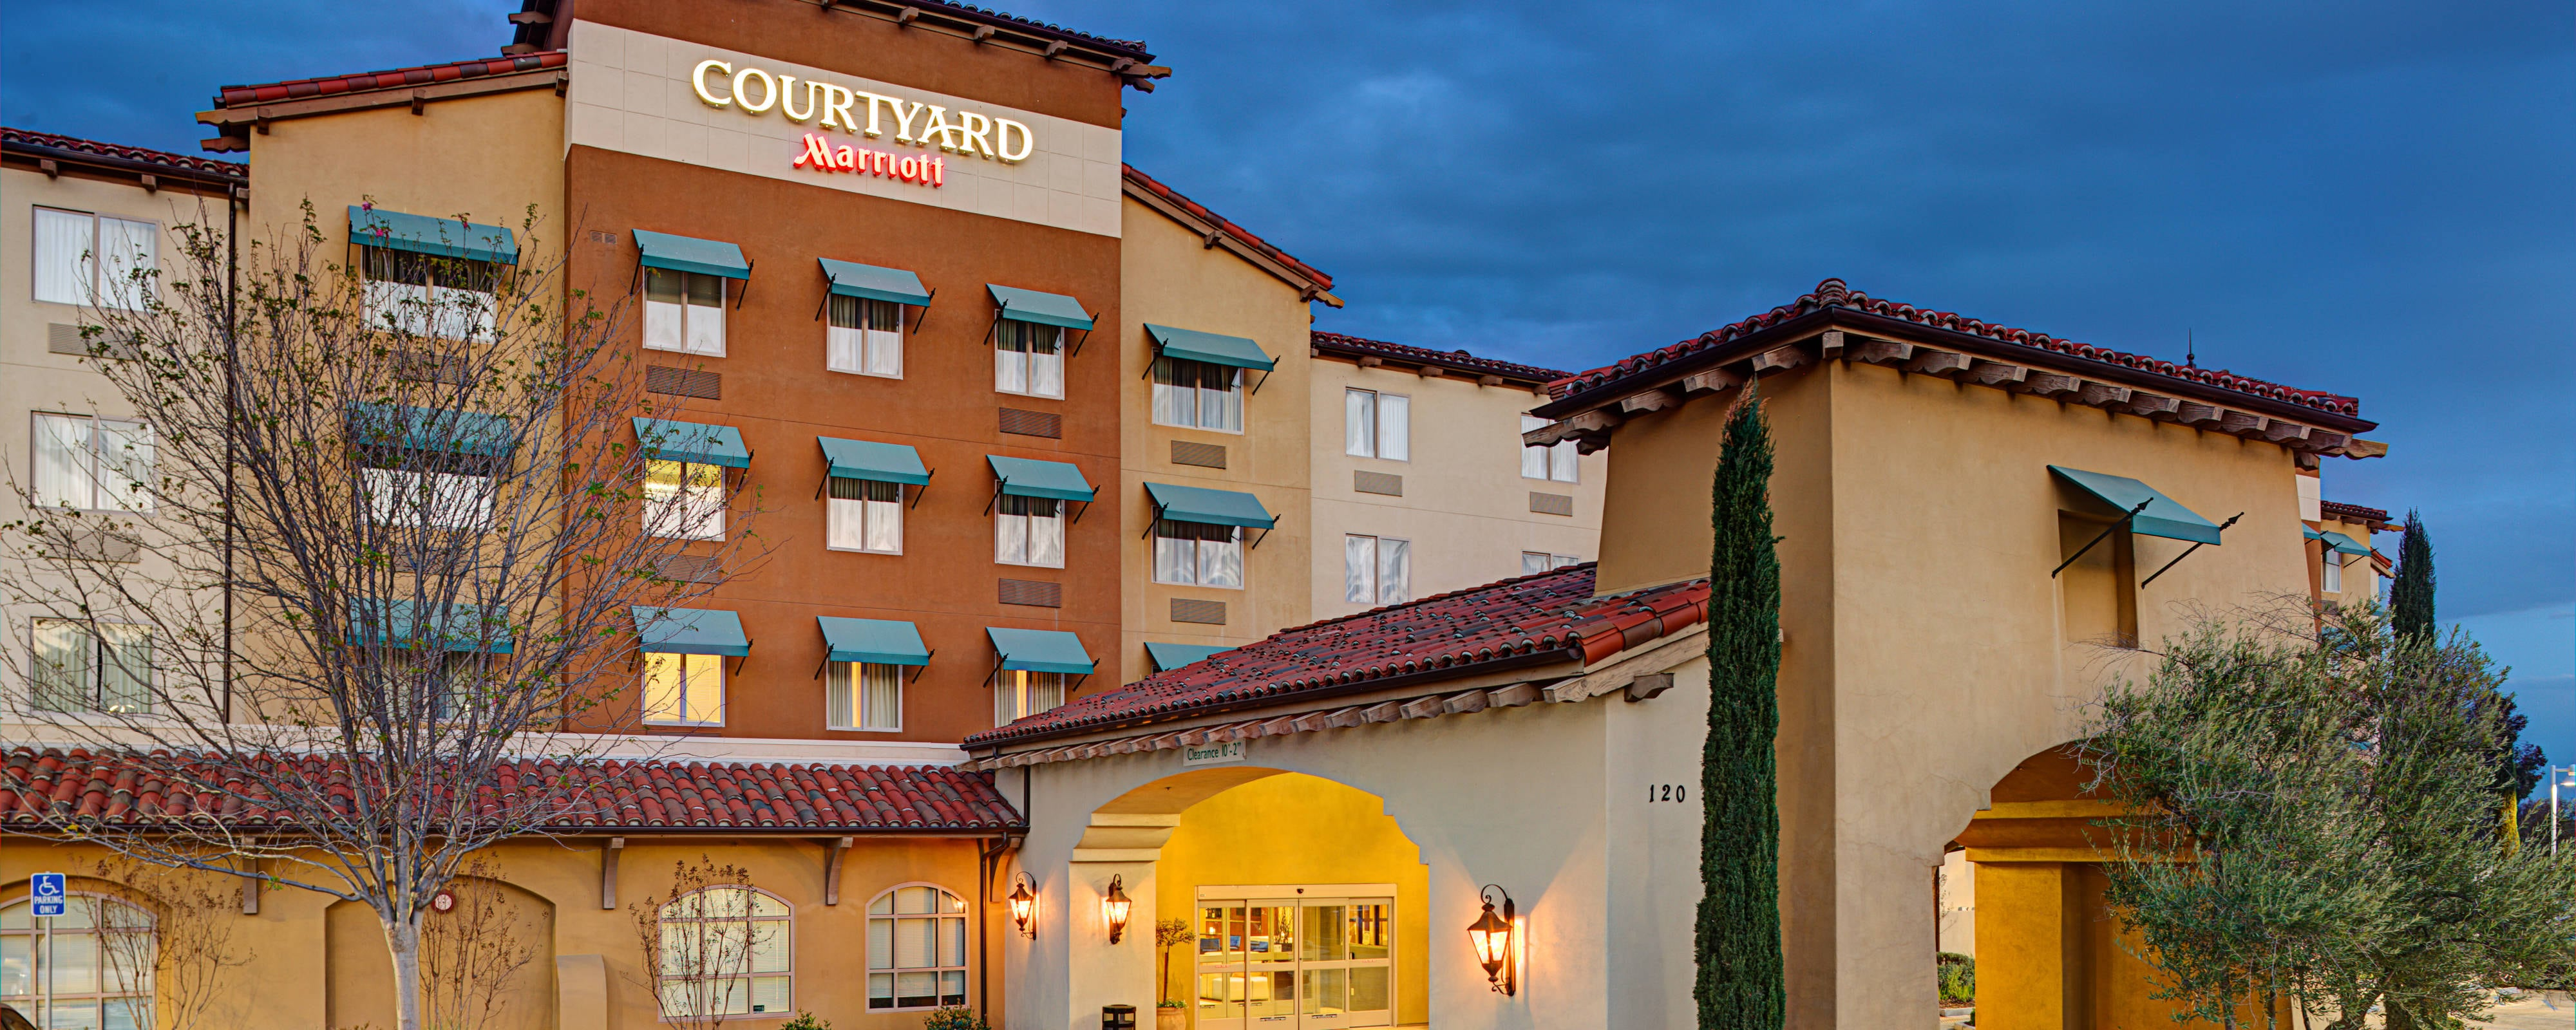 courtyard paso robles a new hotel in paso robles california. Black Bedroom Furniture Sets. Home Design Ideas